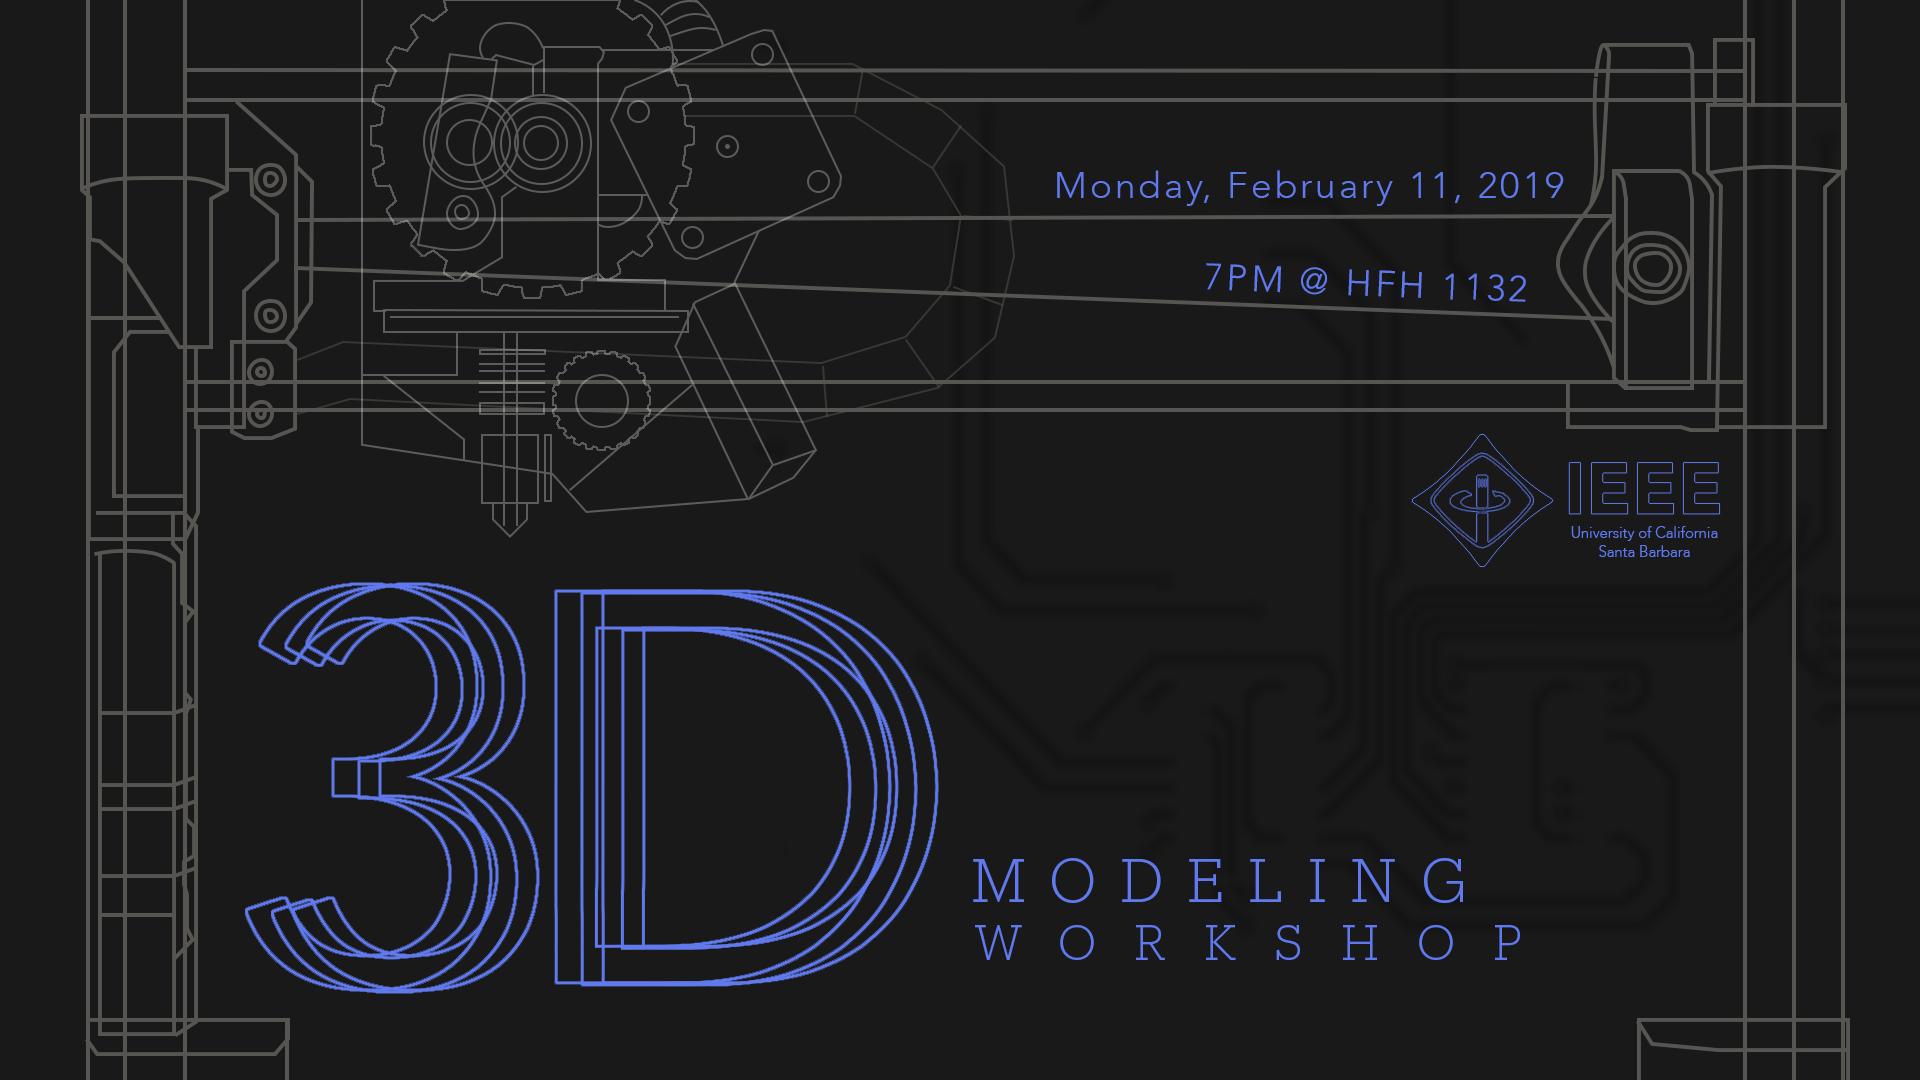 3D Modeling / Printing Workshop